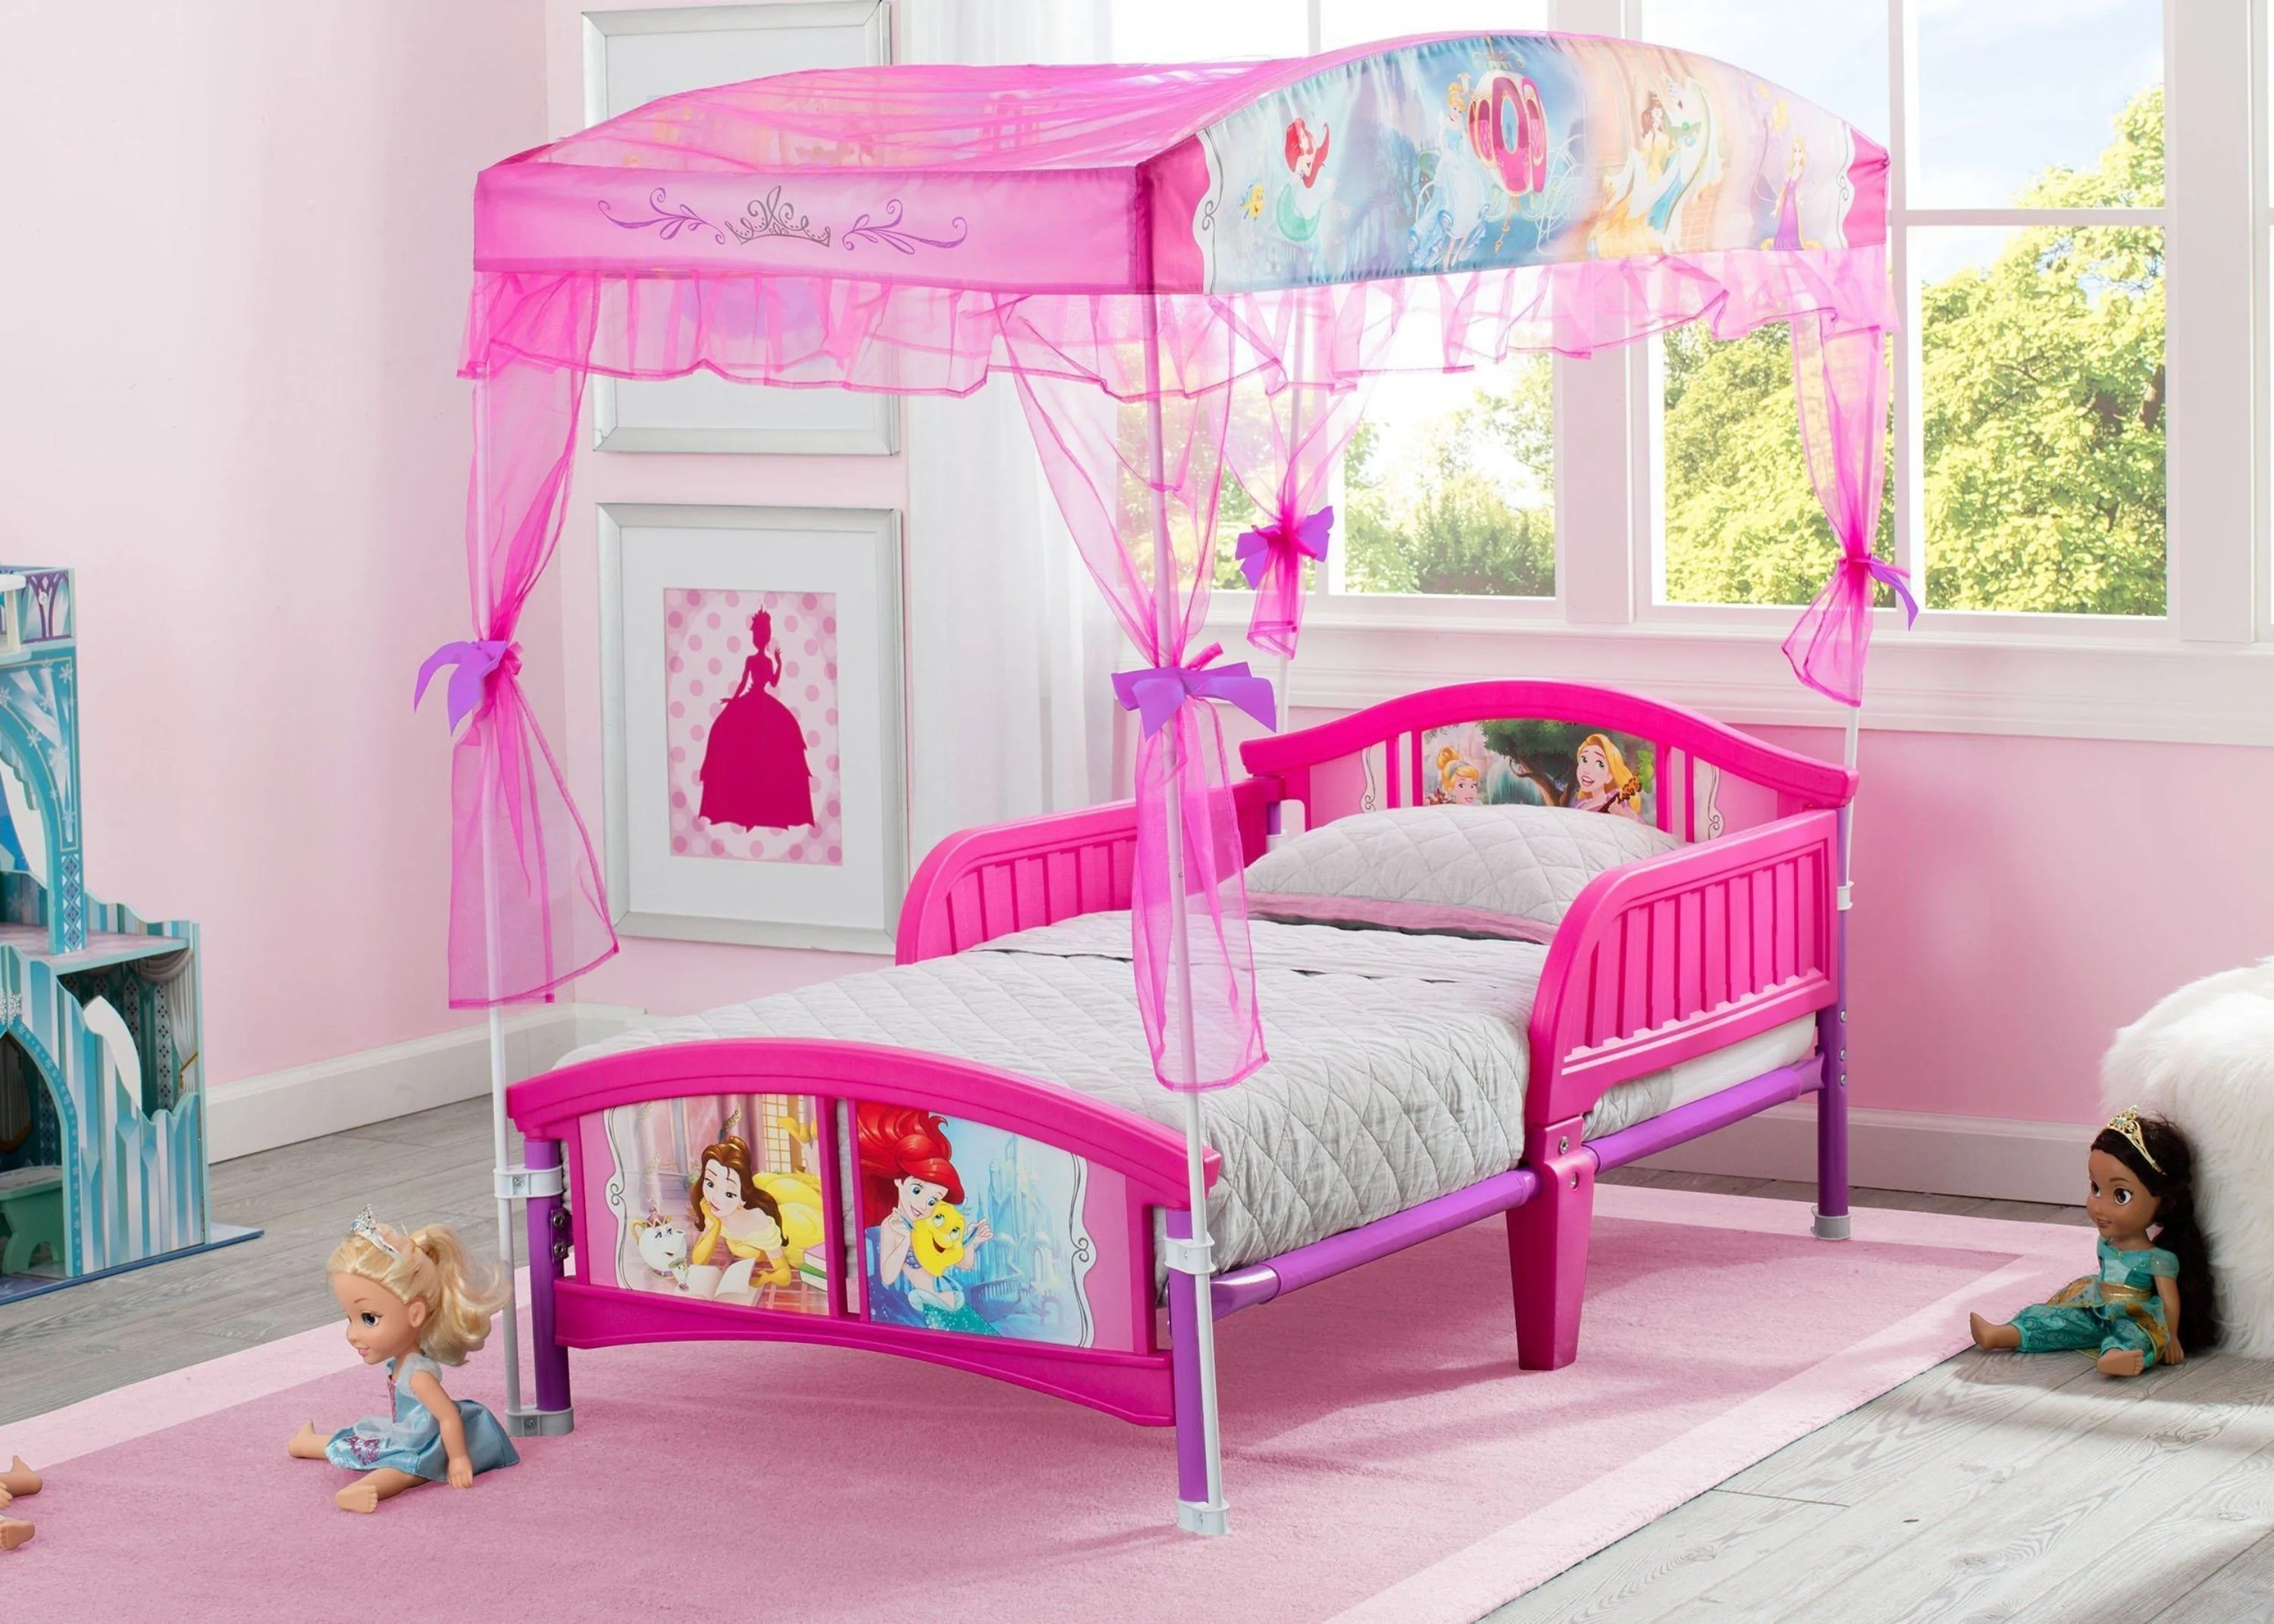 Princess Canopy Toddler Bed Delta Children